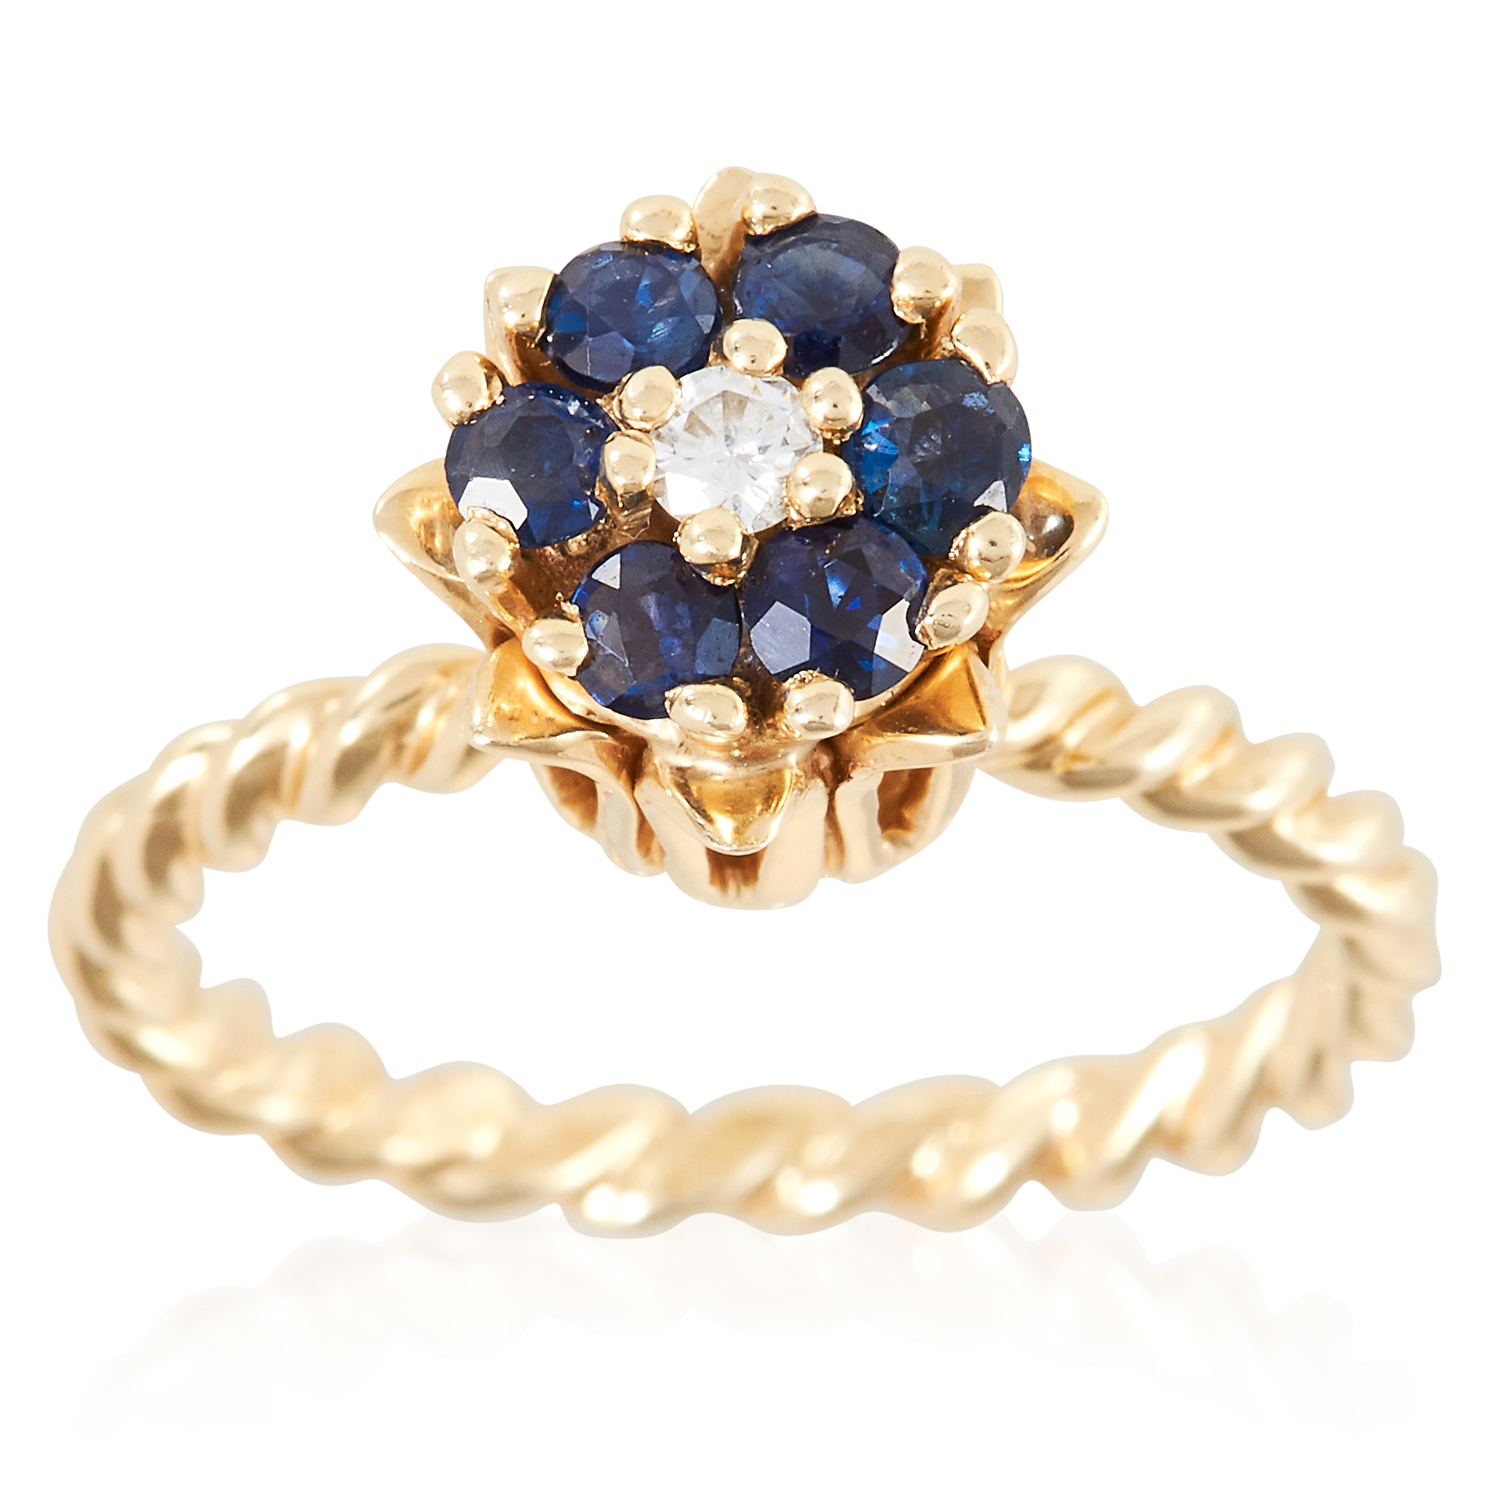 A SAPPHIRE AND DIAMOND CLUSTER RING in yellow gold, set with a round cut diamond and six round cut